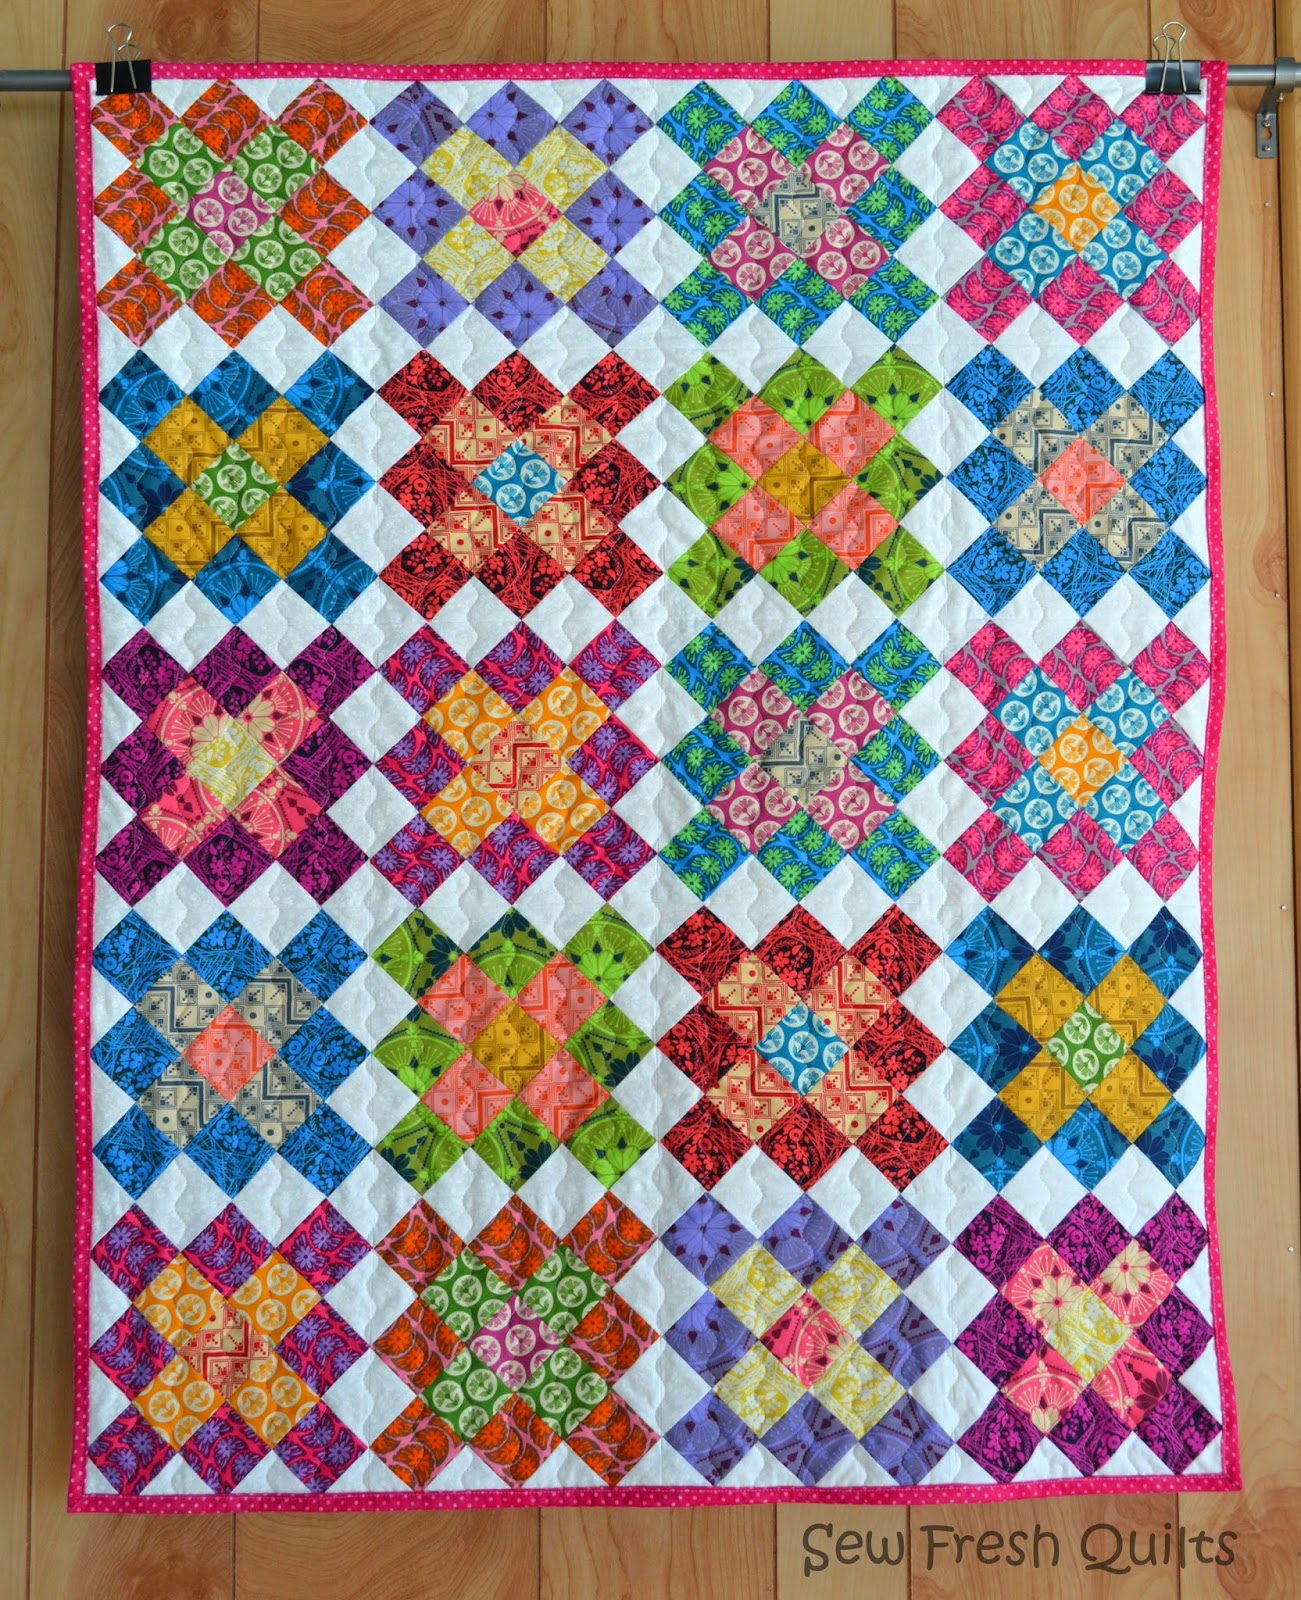 Free Quilt Patterns Square Blocks : Sew Fresh Quilts: Granny Square Quilt Blocks